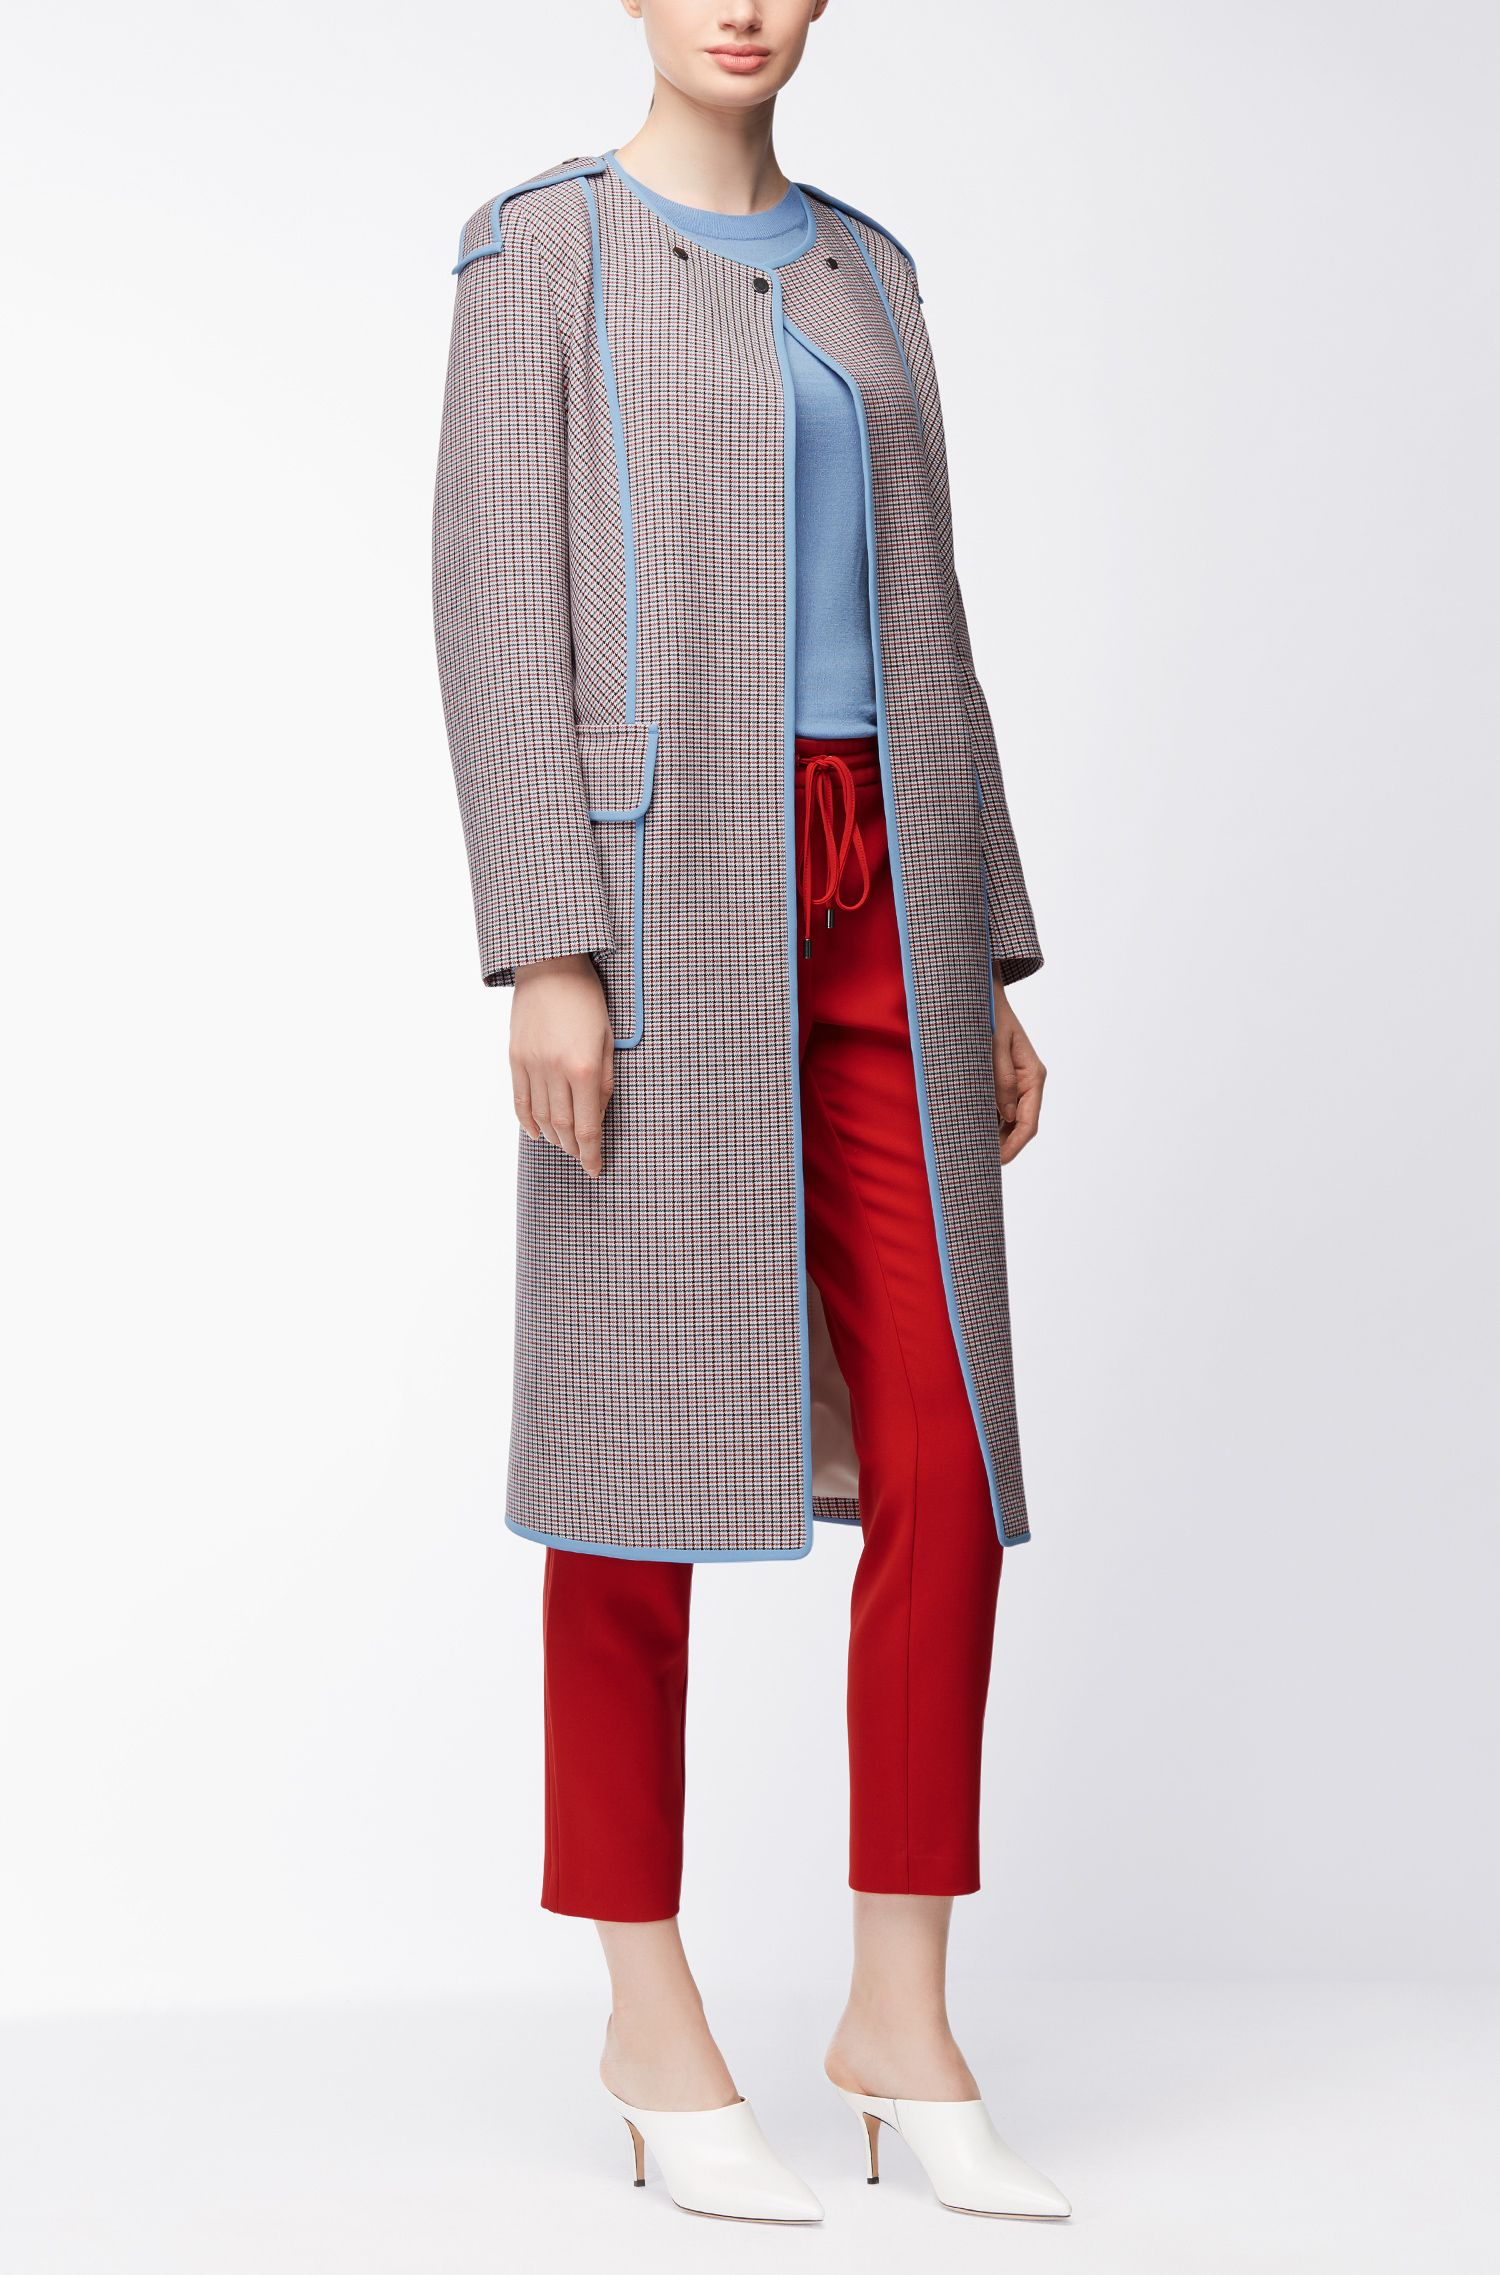 Oversized long coat in pepita-patterned fabric